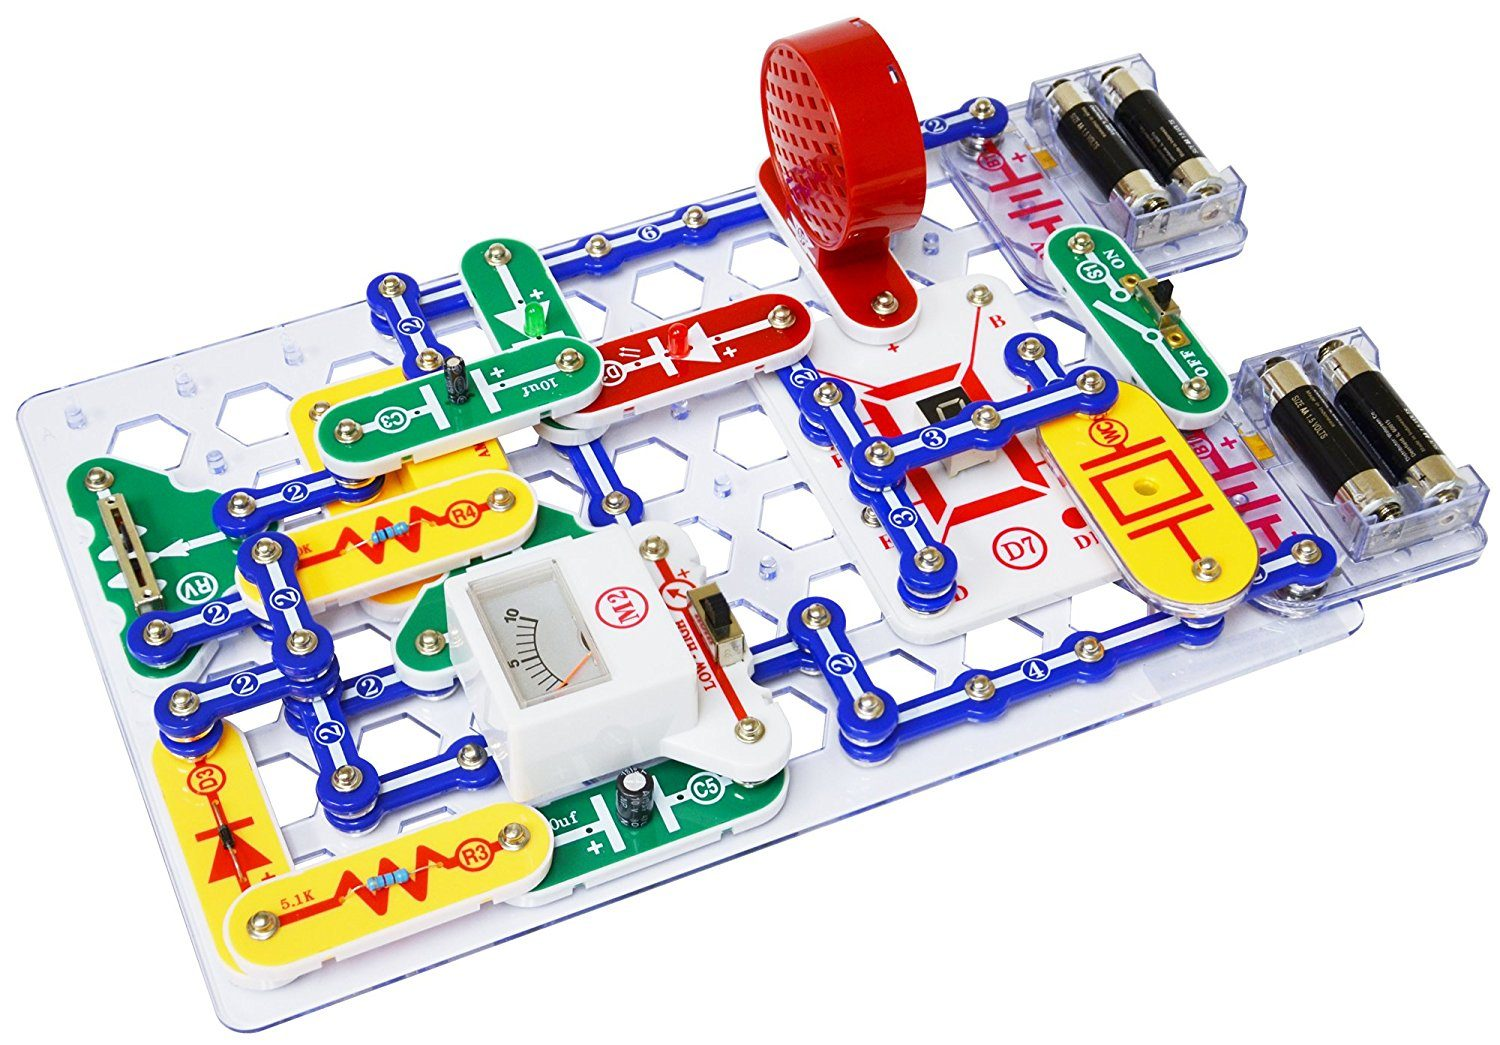 Do Space Learn With Tech Kits Computer Code And Circuit Board Background Illustration Snap Circuits